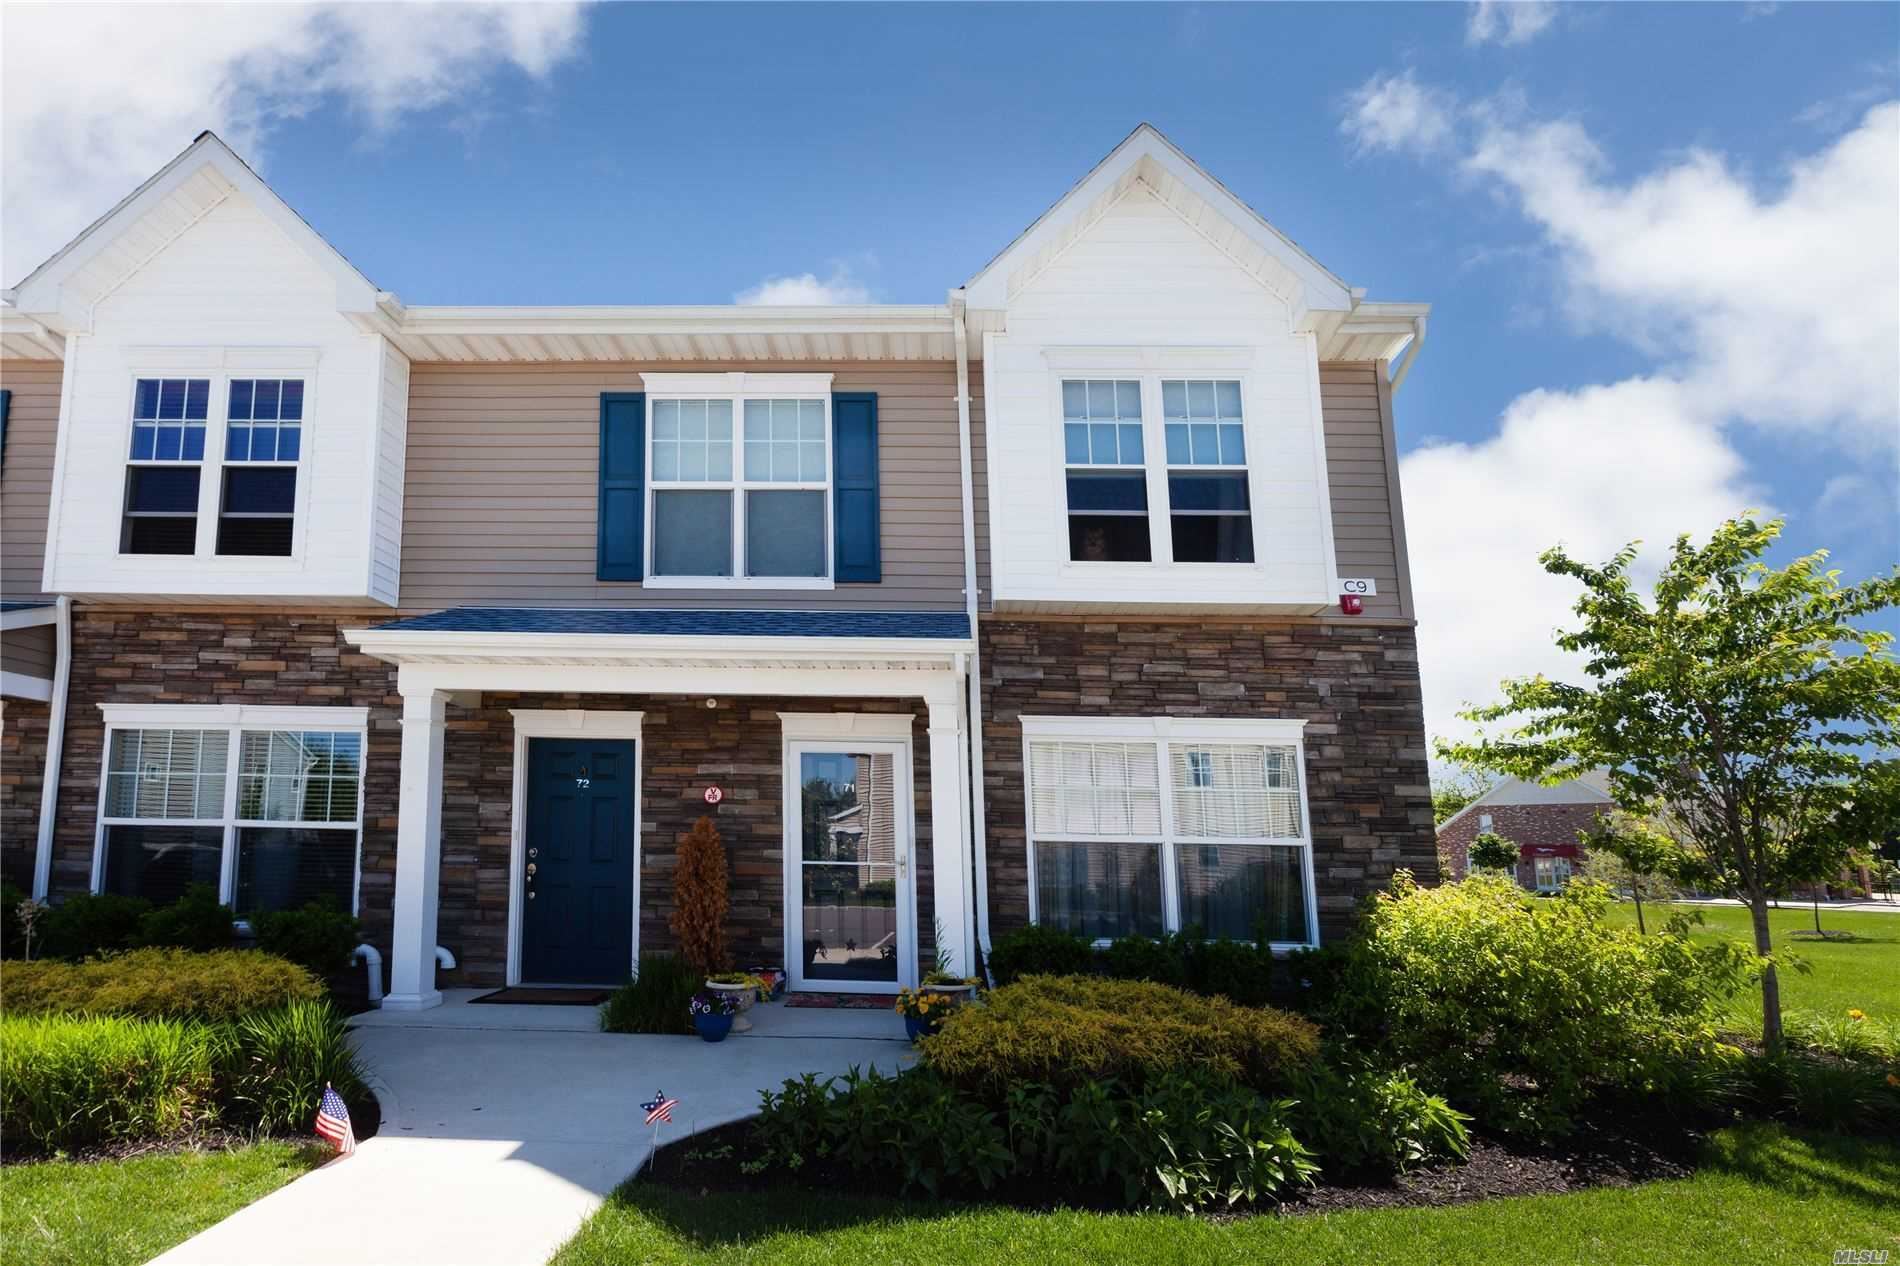 71 Weatherby Ln, Central Islip, NY 11722 - MLS#: 3214722